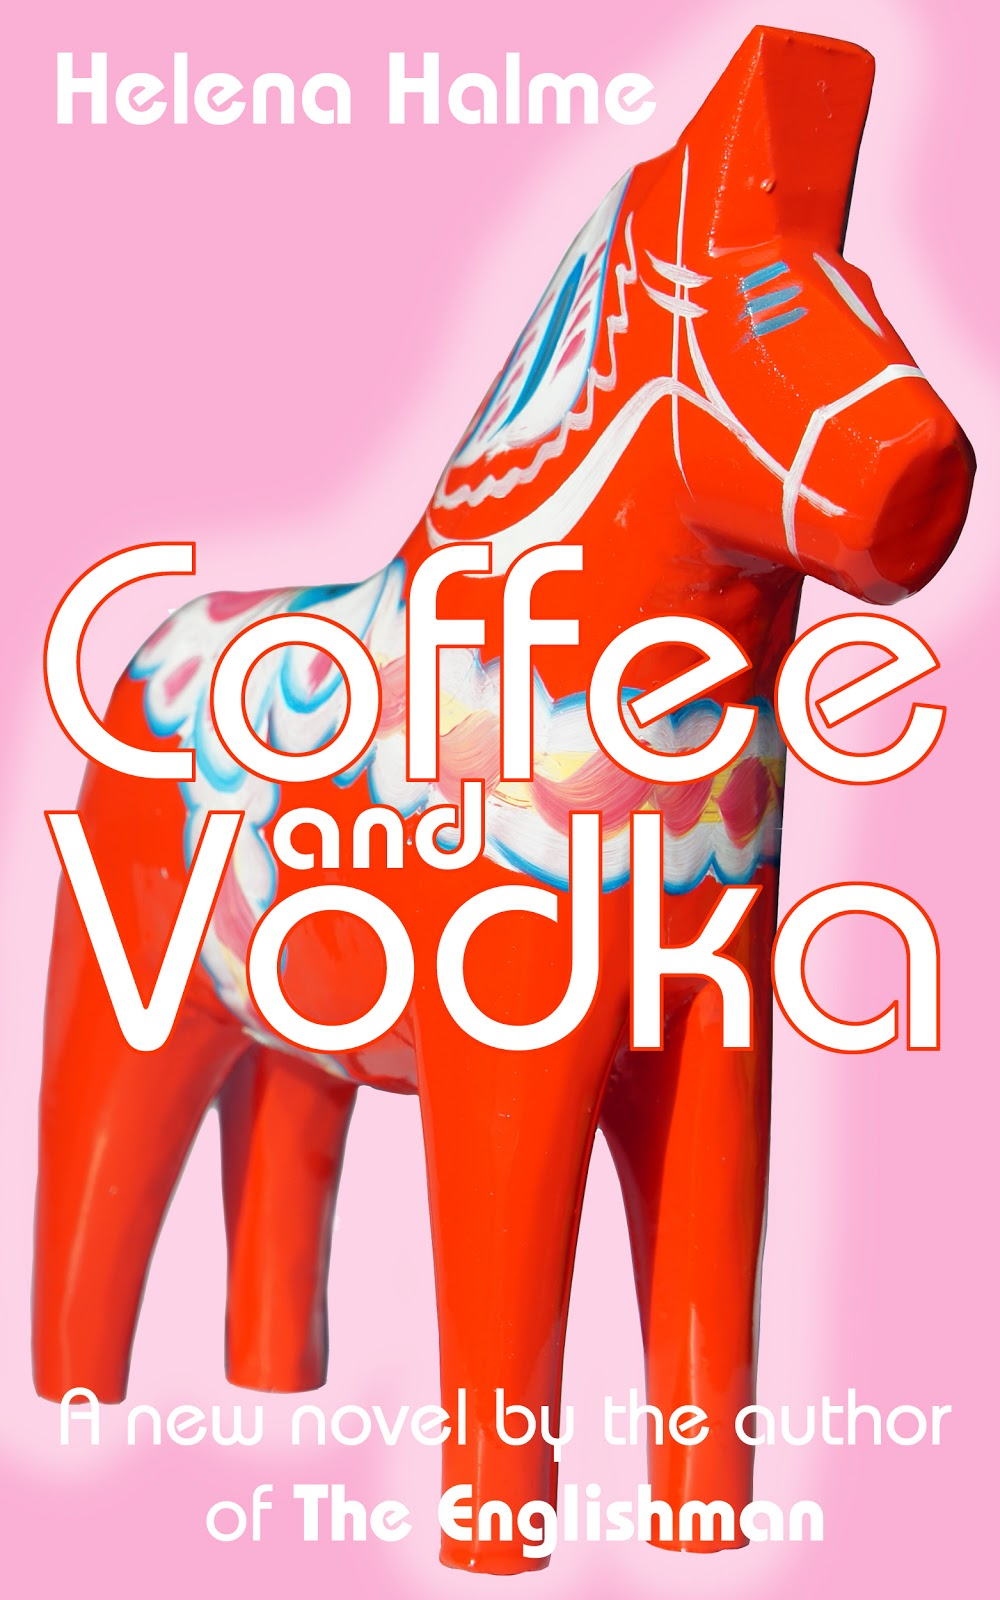 coffee-vodka